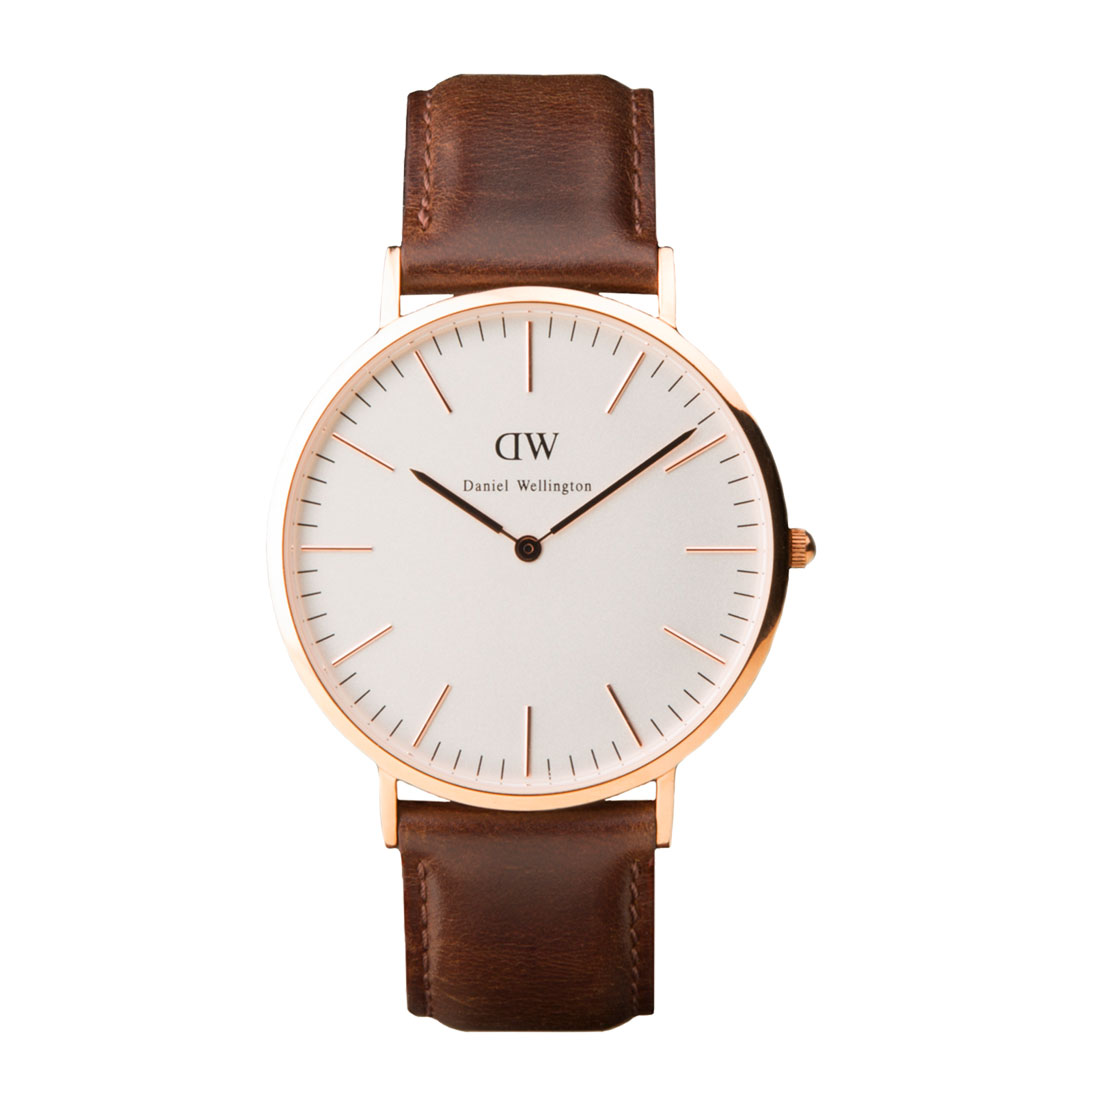 Daniel Wellington men watches 2013